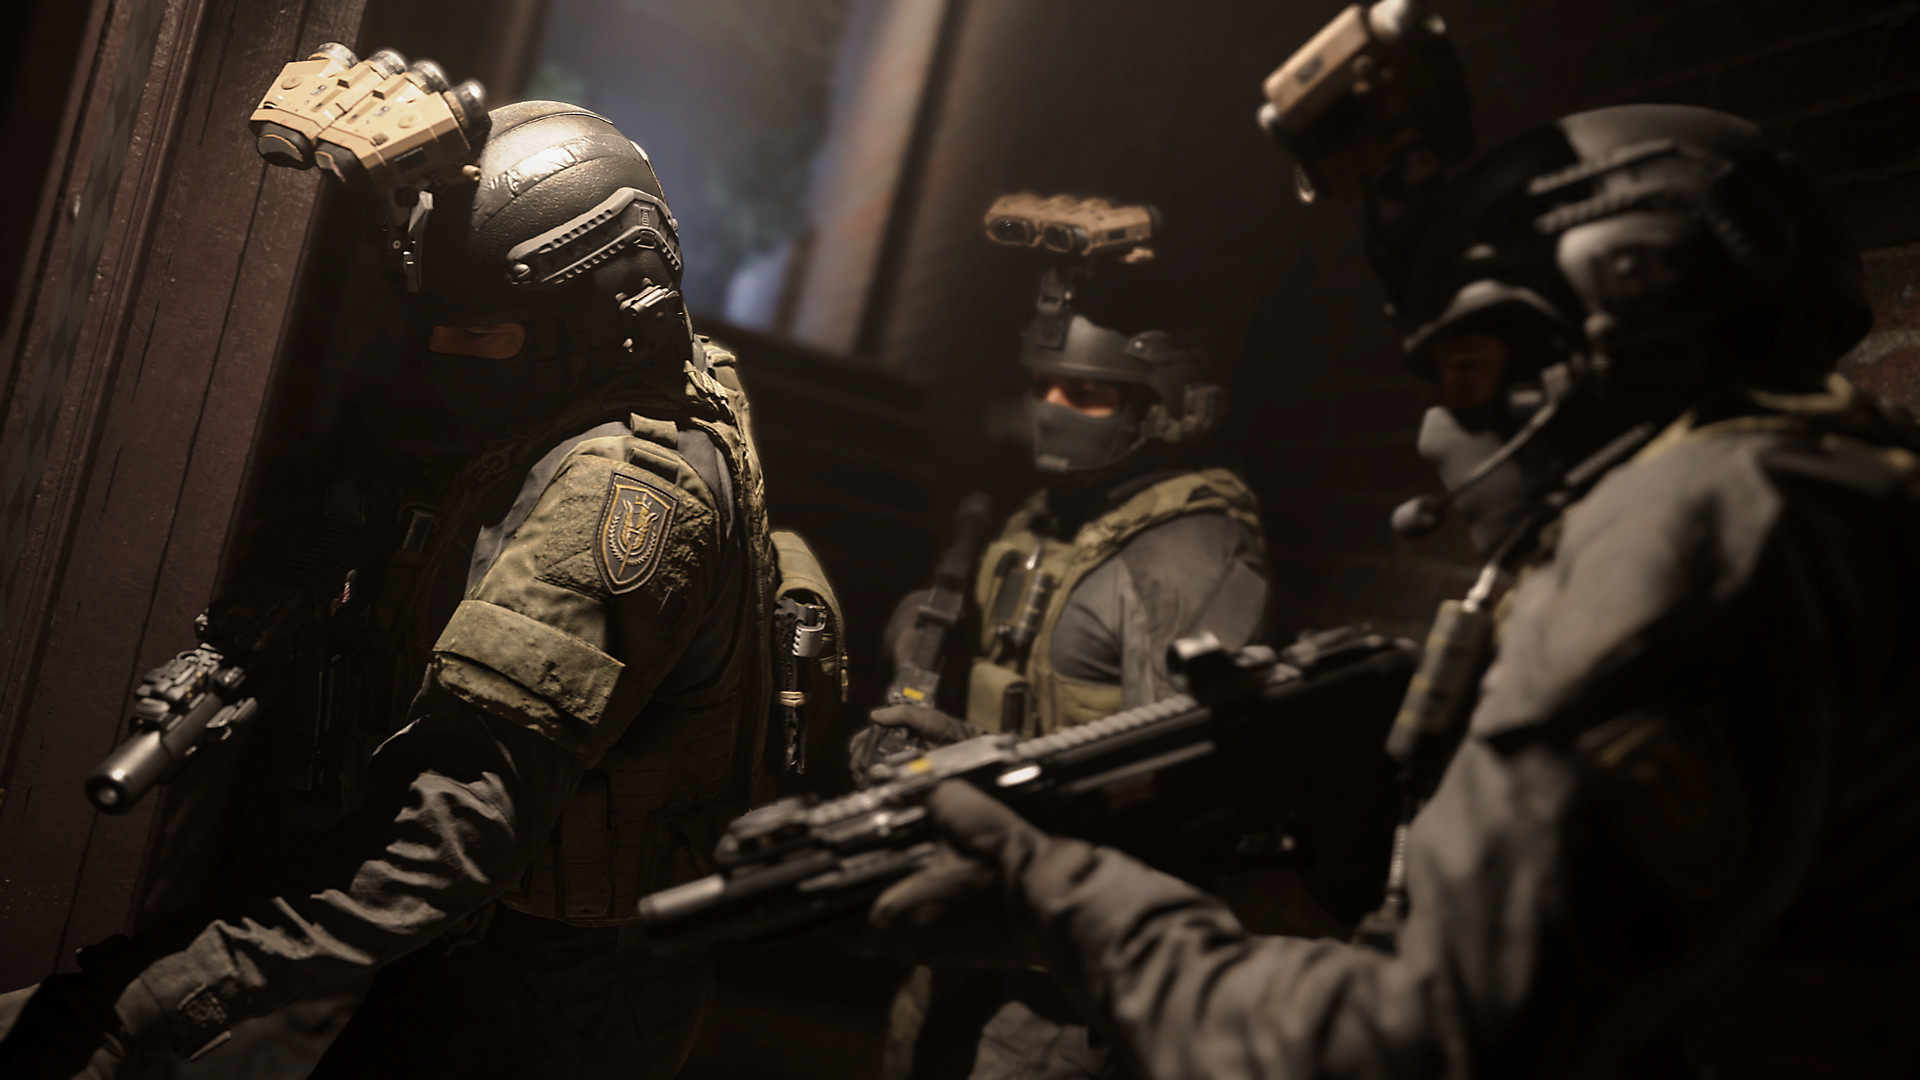 Call of Duty Modern Warfare - Online Multiplayer Image